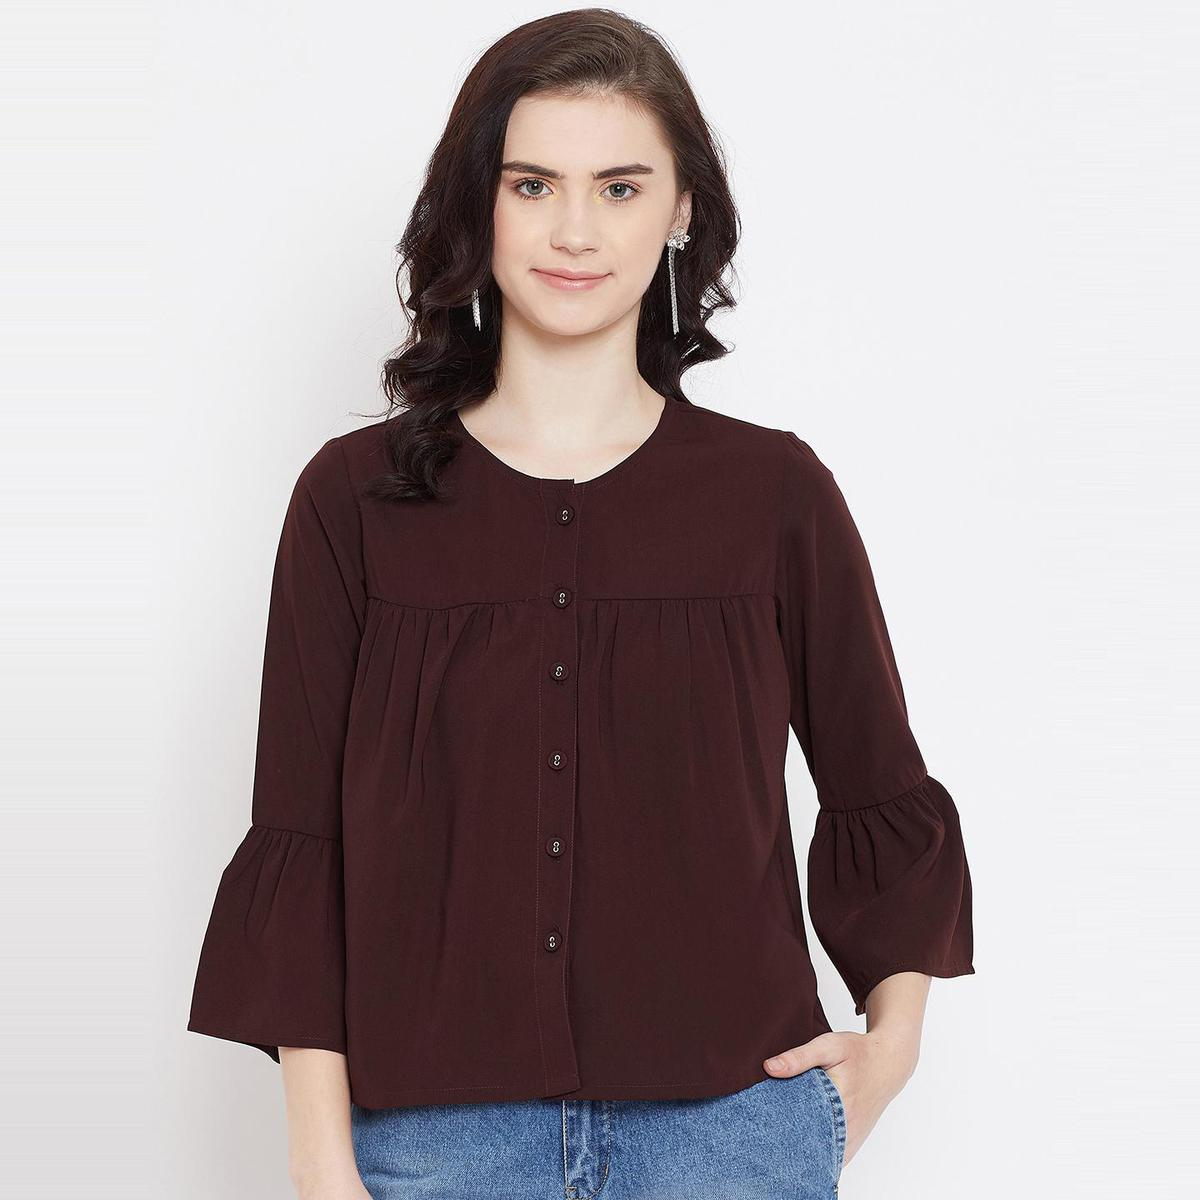 Lucero - Maroon Colored Casual Gathered Round Neck Button Down Polyester Shirt